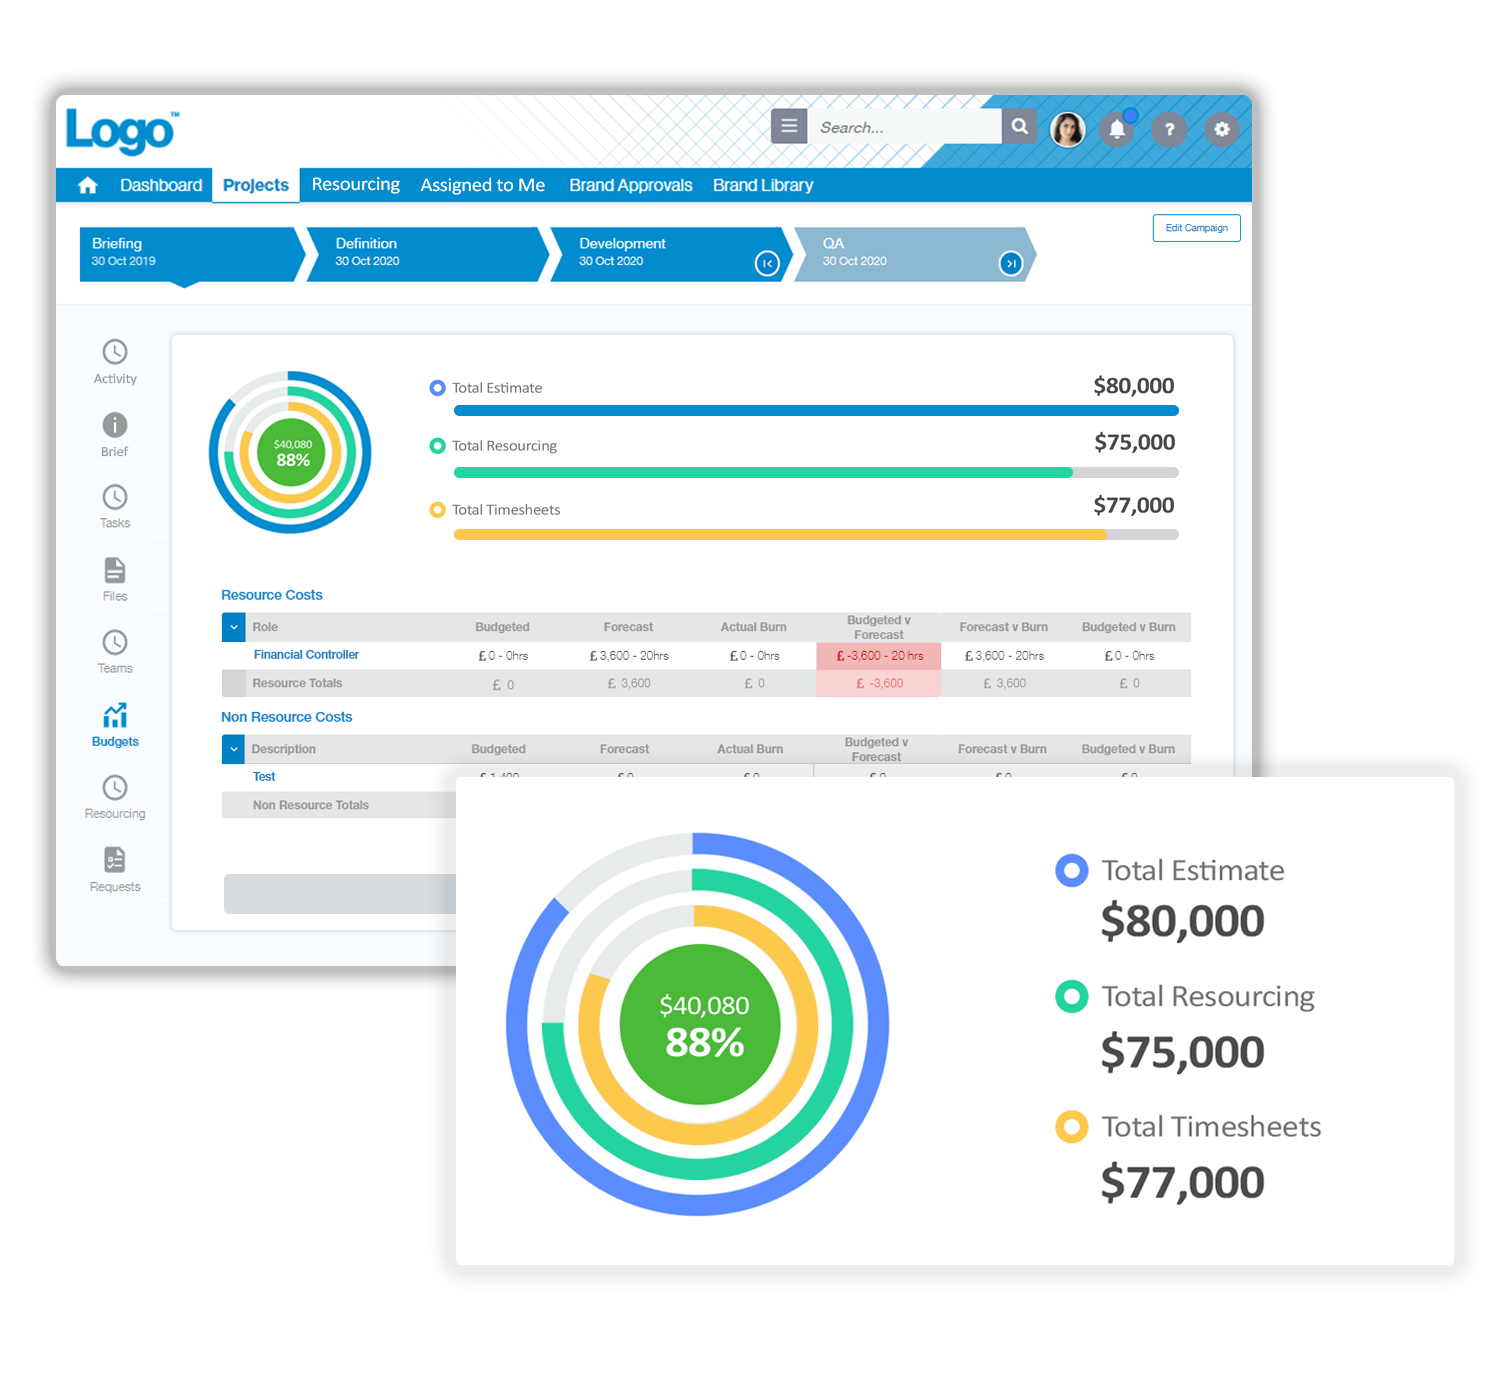 Compare and track estimates and costs of projects in real-time.